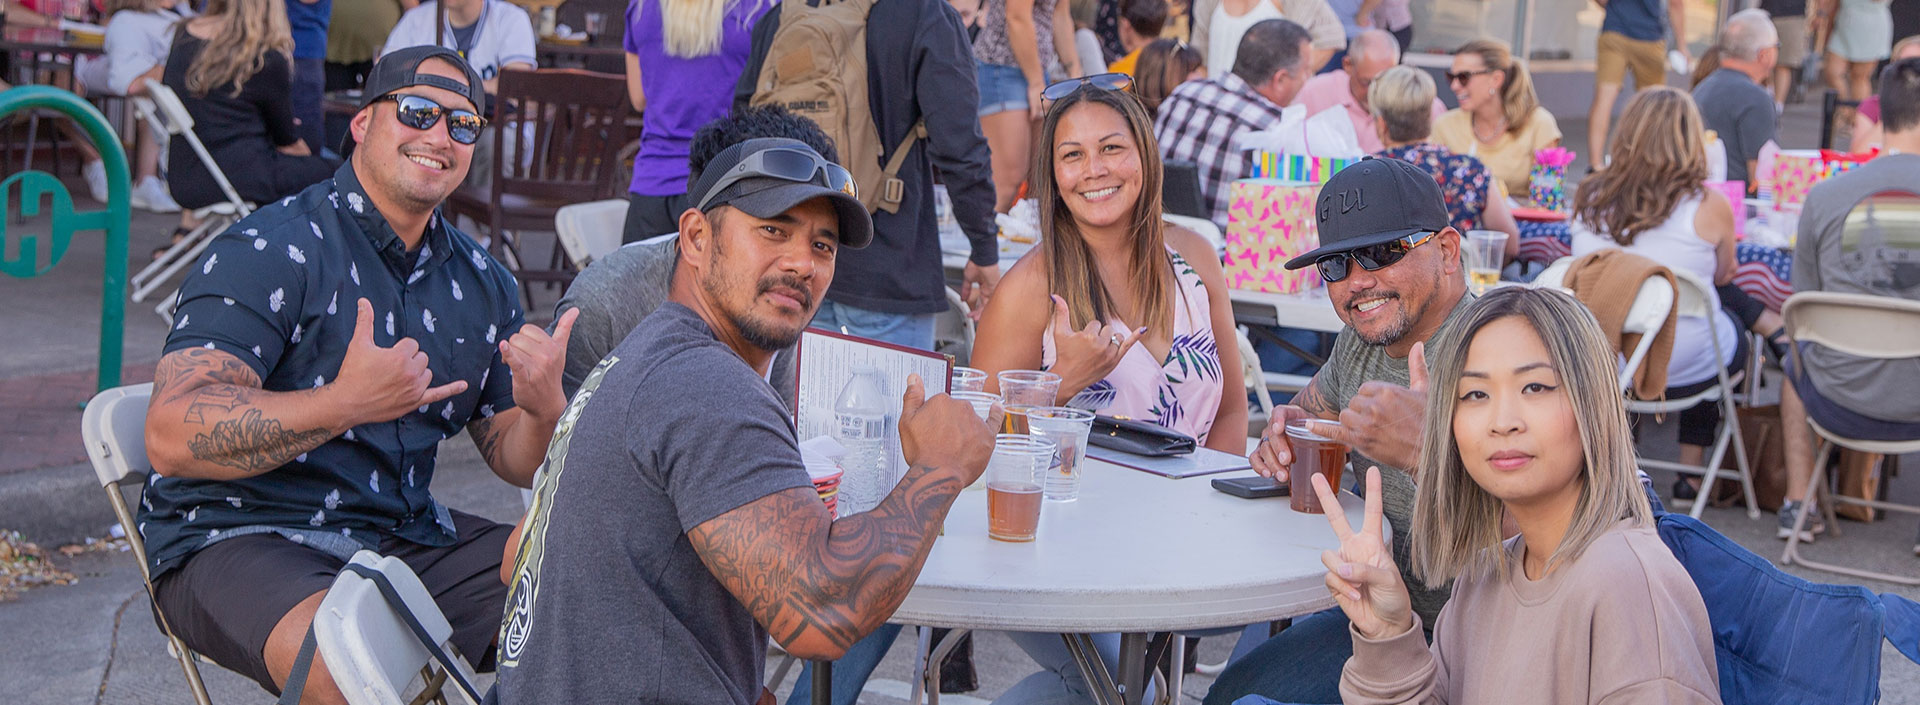 A family greets the camera as they enjoy drinks at an outdoor event